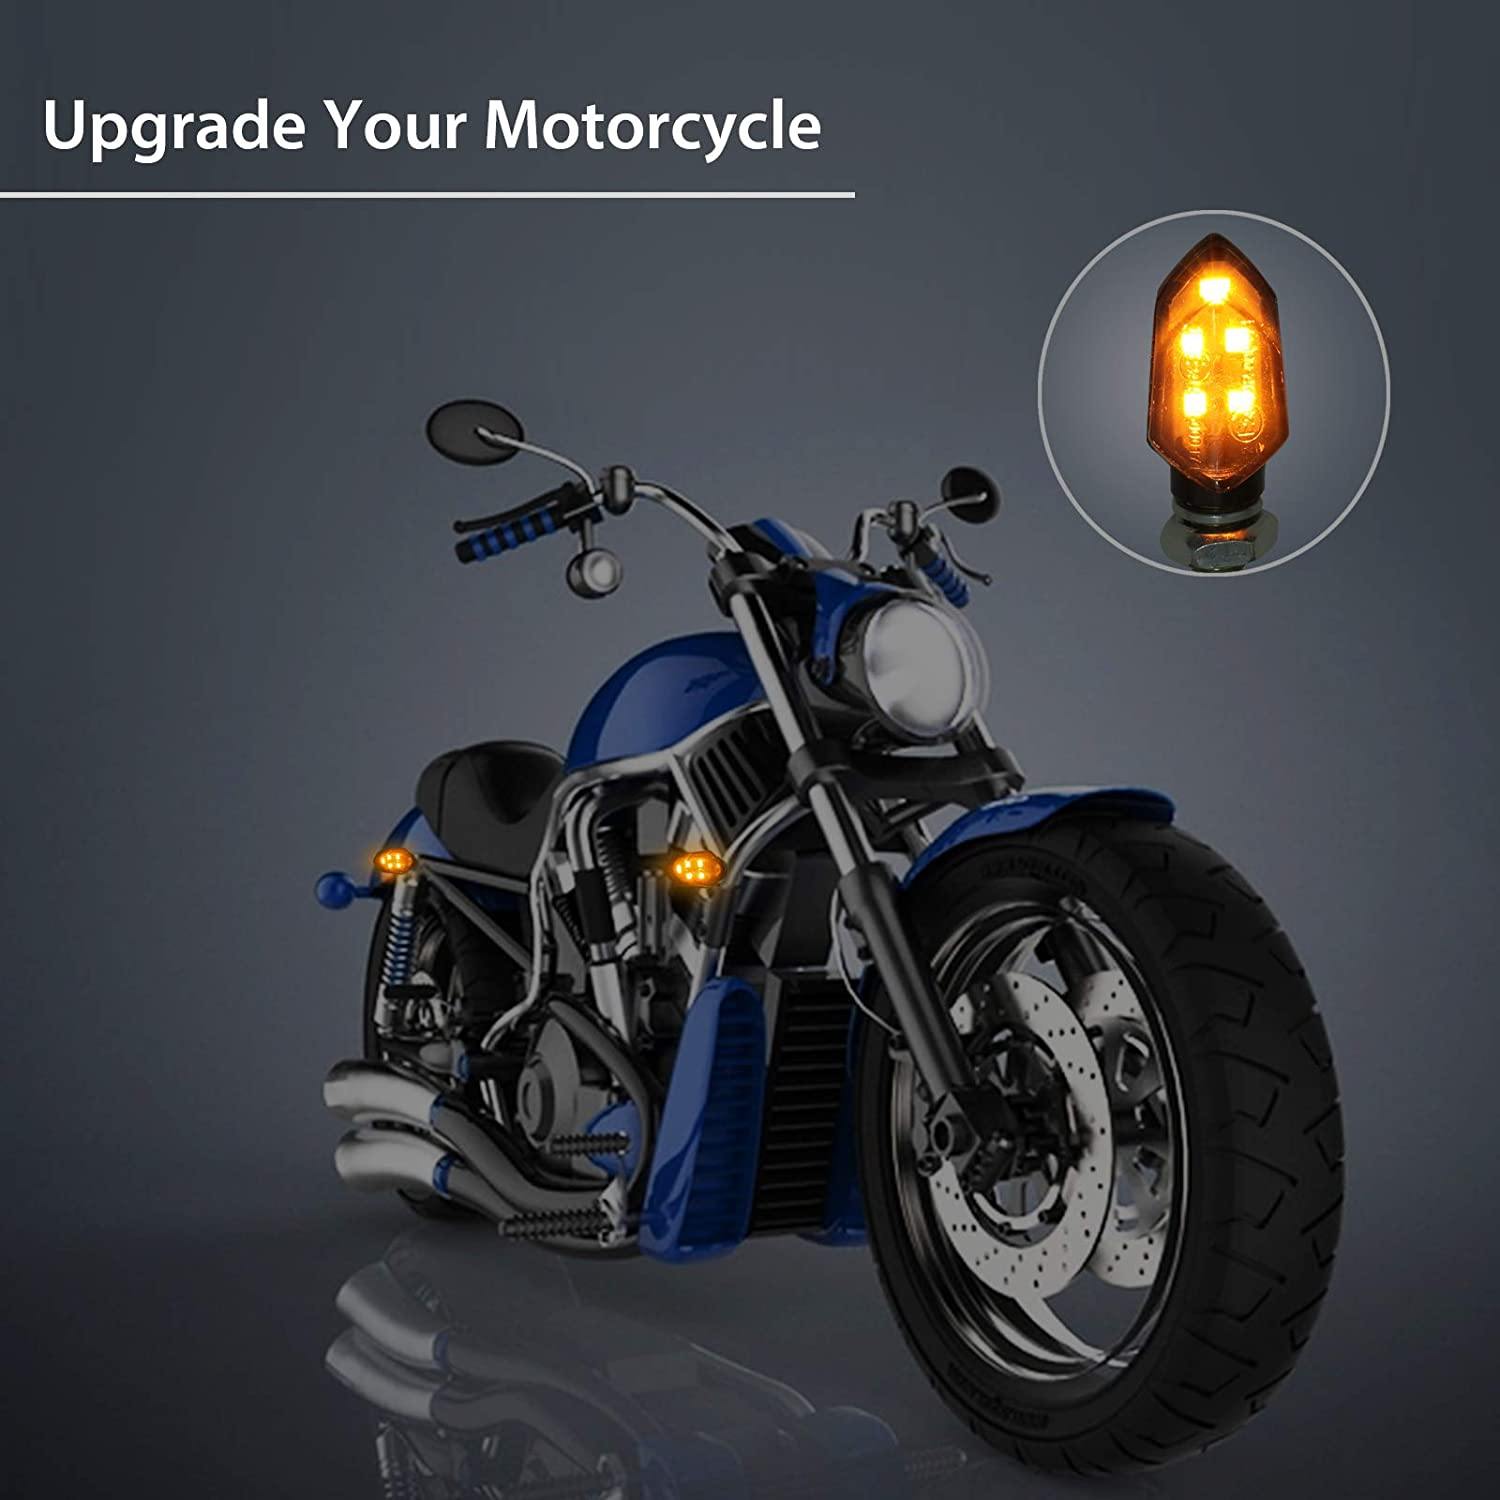 Justech New Design 4pcs Micro Led Turn Signal Lights Motorbike Indicator Universal Waterproof 3528 Lamp Beads Indicator For Motorcycle Motorbike Harley Kawasaki Yamaha Off Road 5559073798